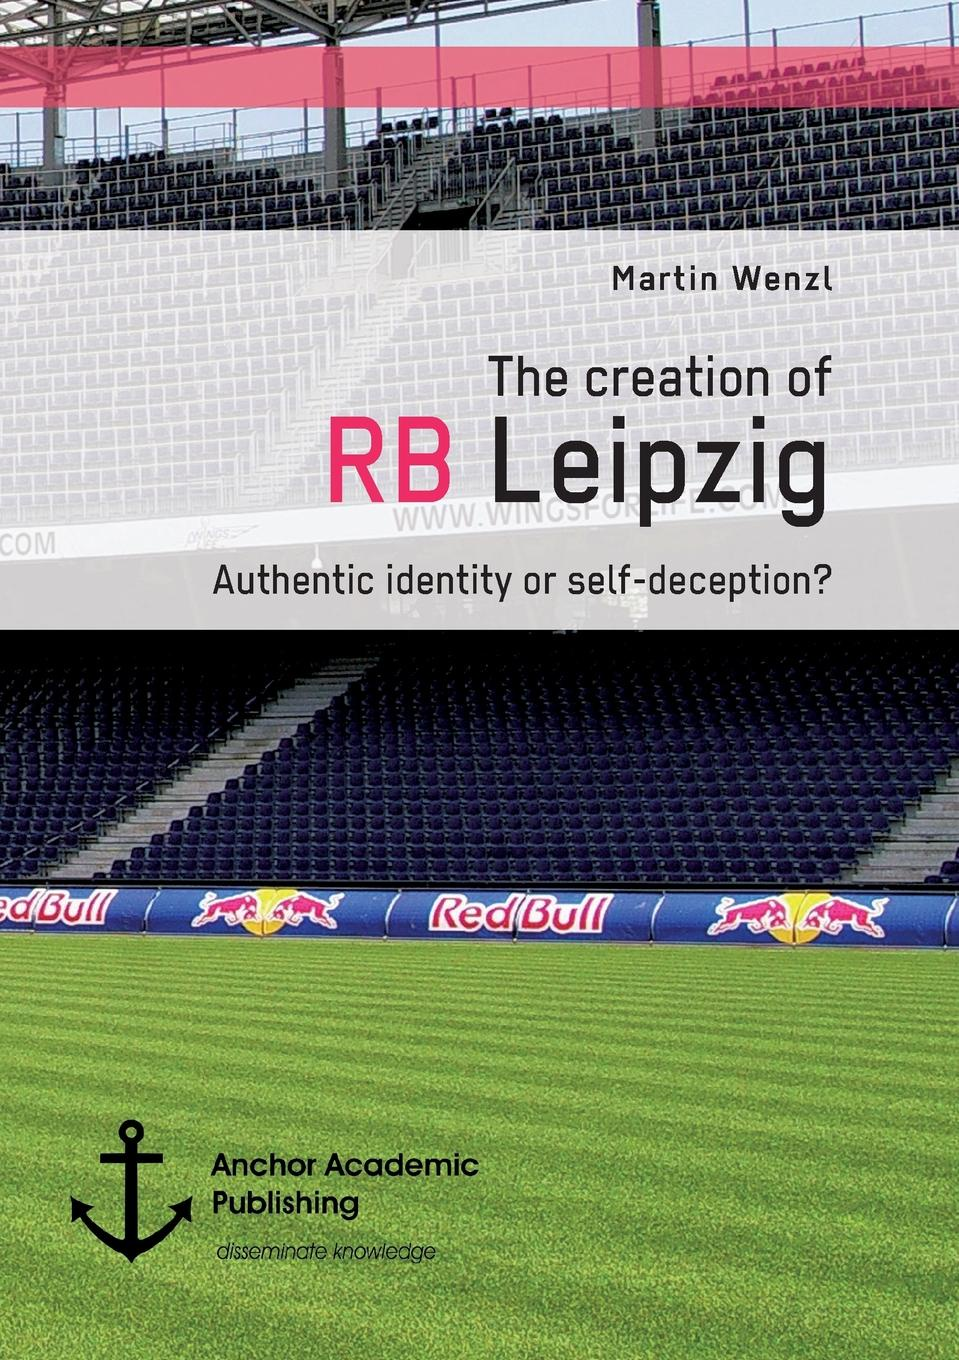 цена на Martin Wenzl The creation of RB Leipzig. Authentic identity or self-deception.